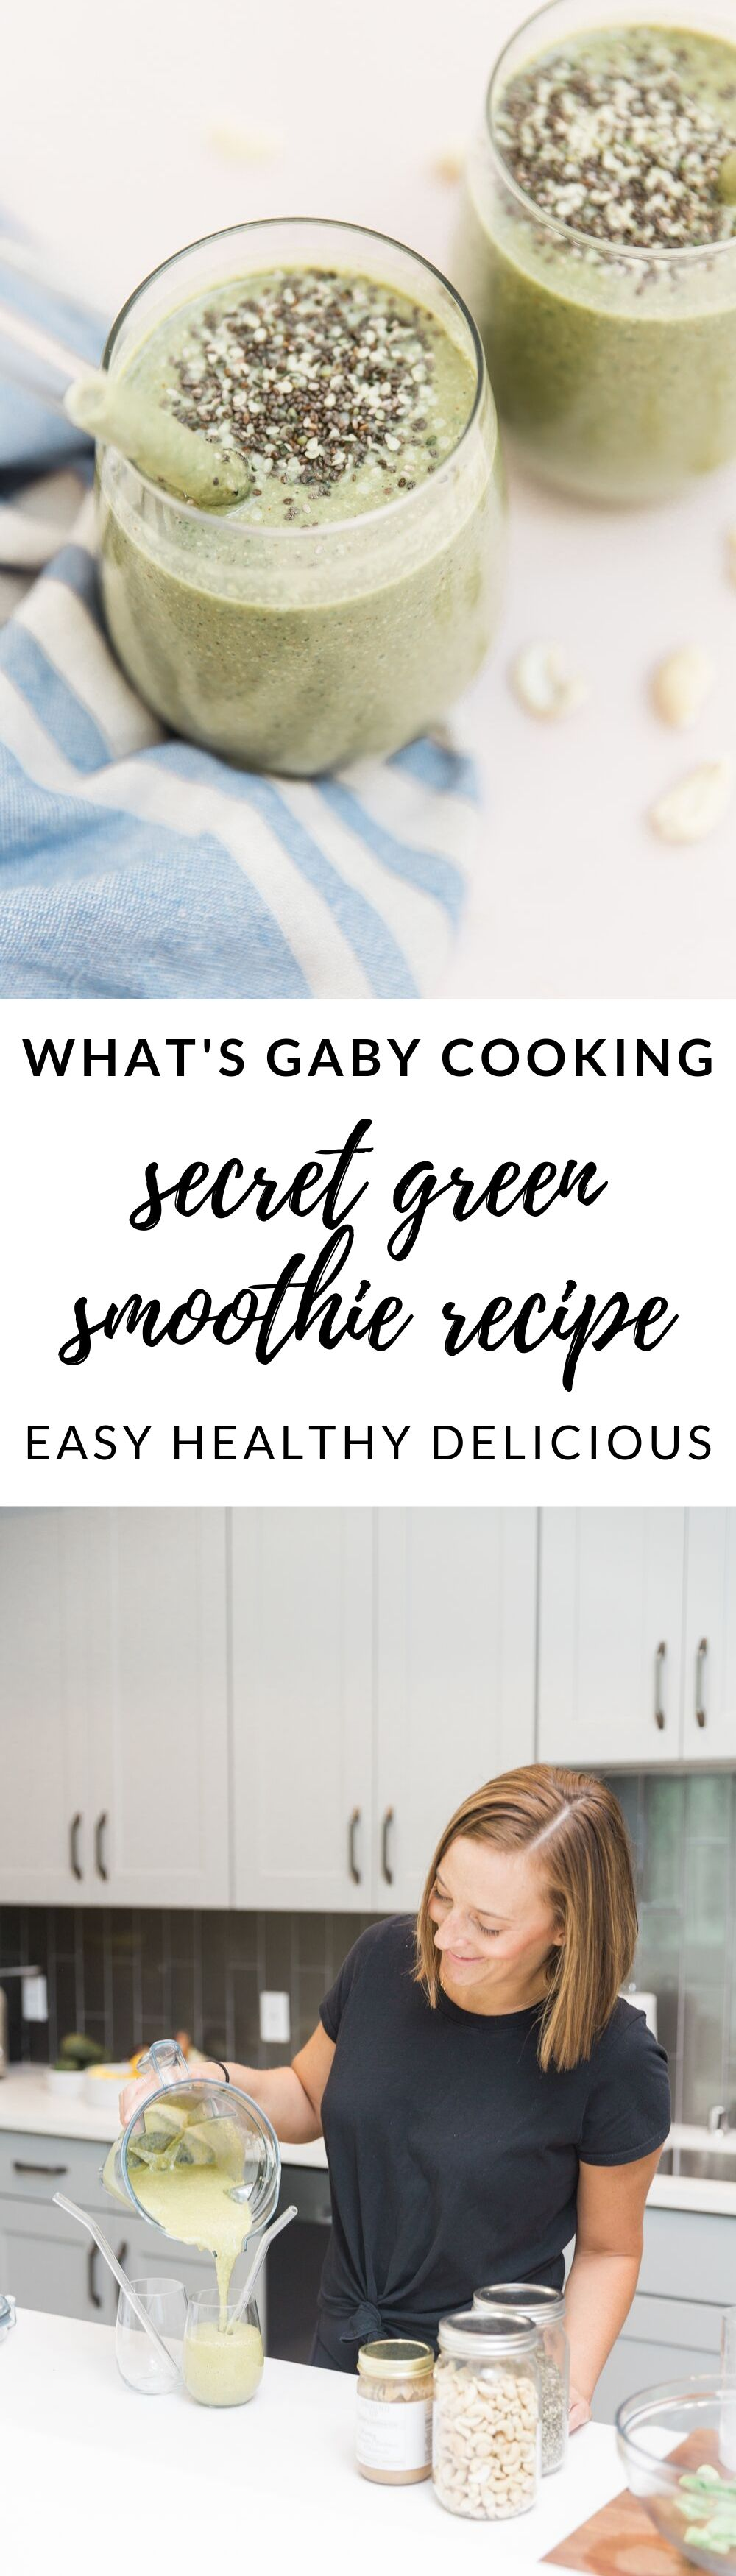 What's Gaby Cooking Secret Recipe